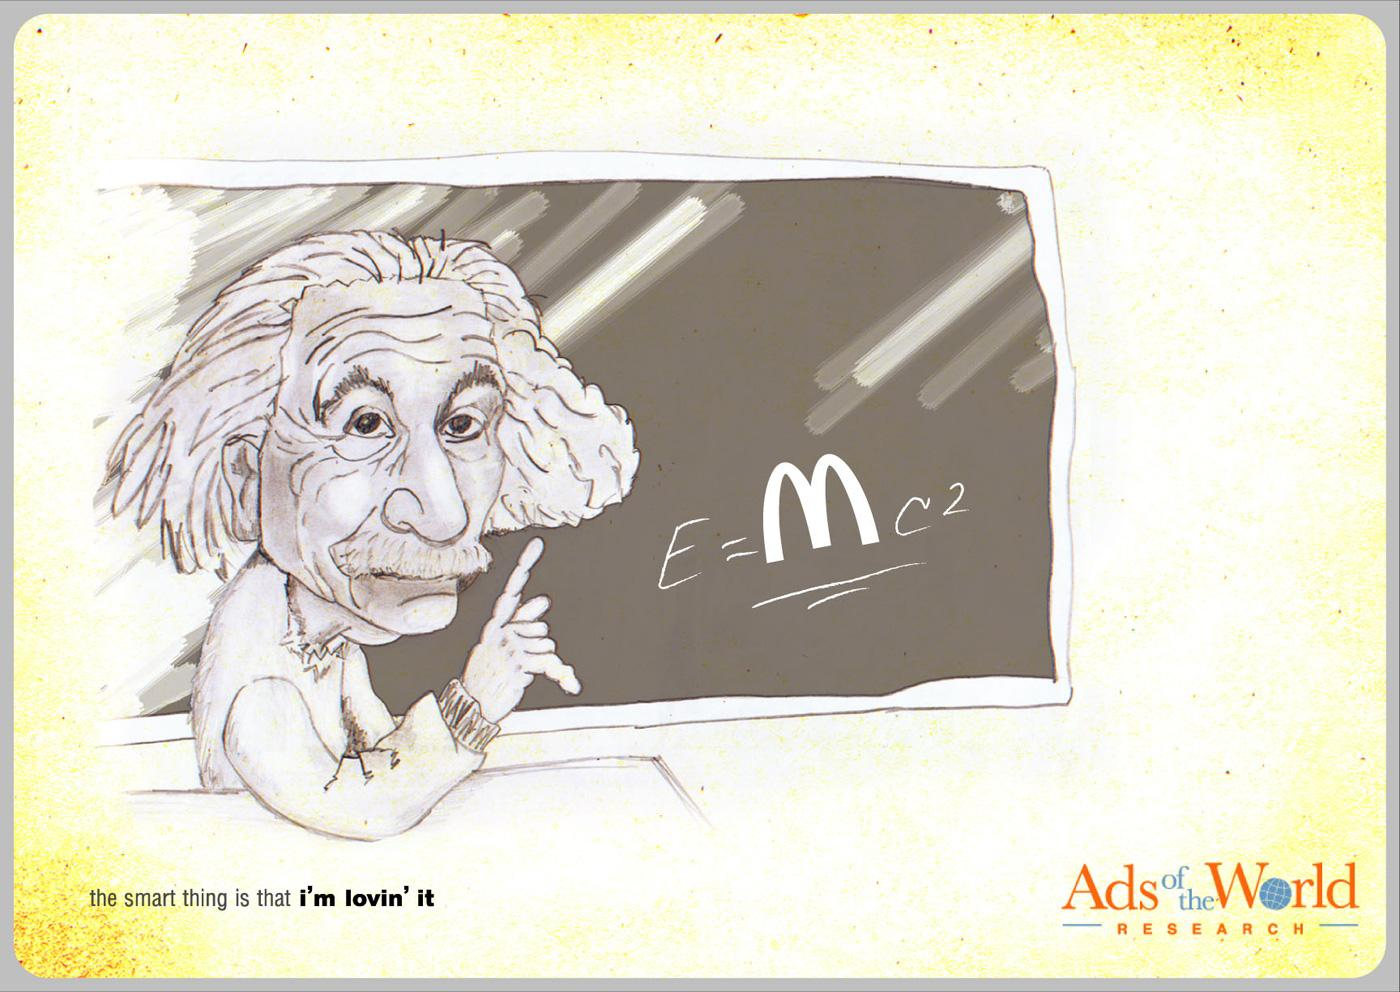 Ads of the World Print Ad -  The smart thing, 3